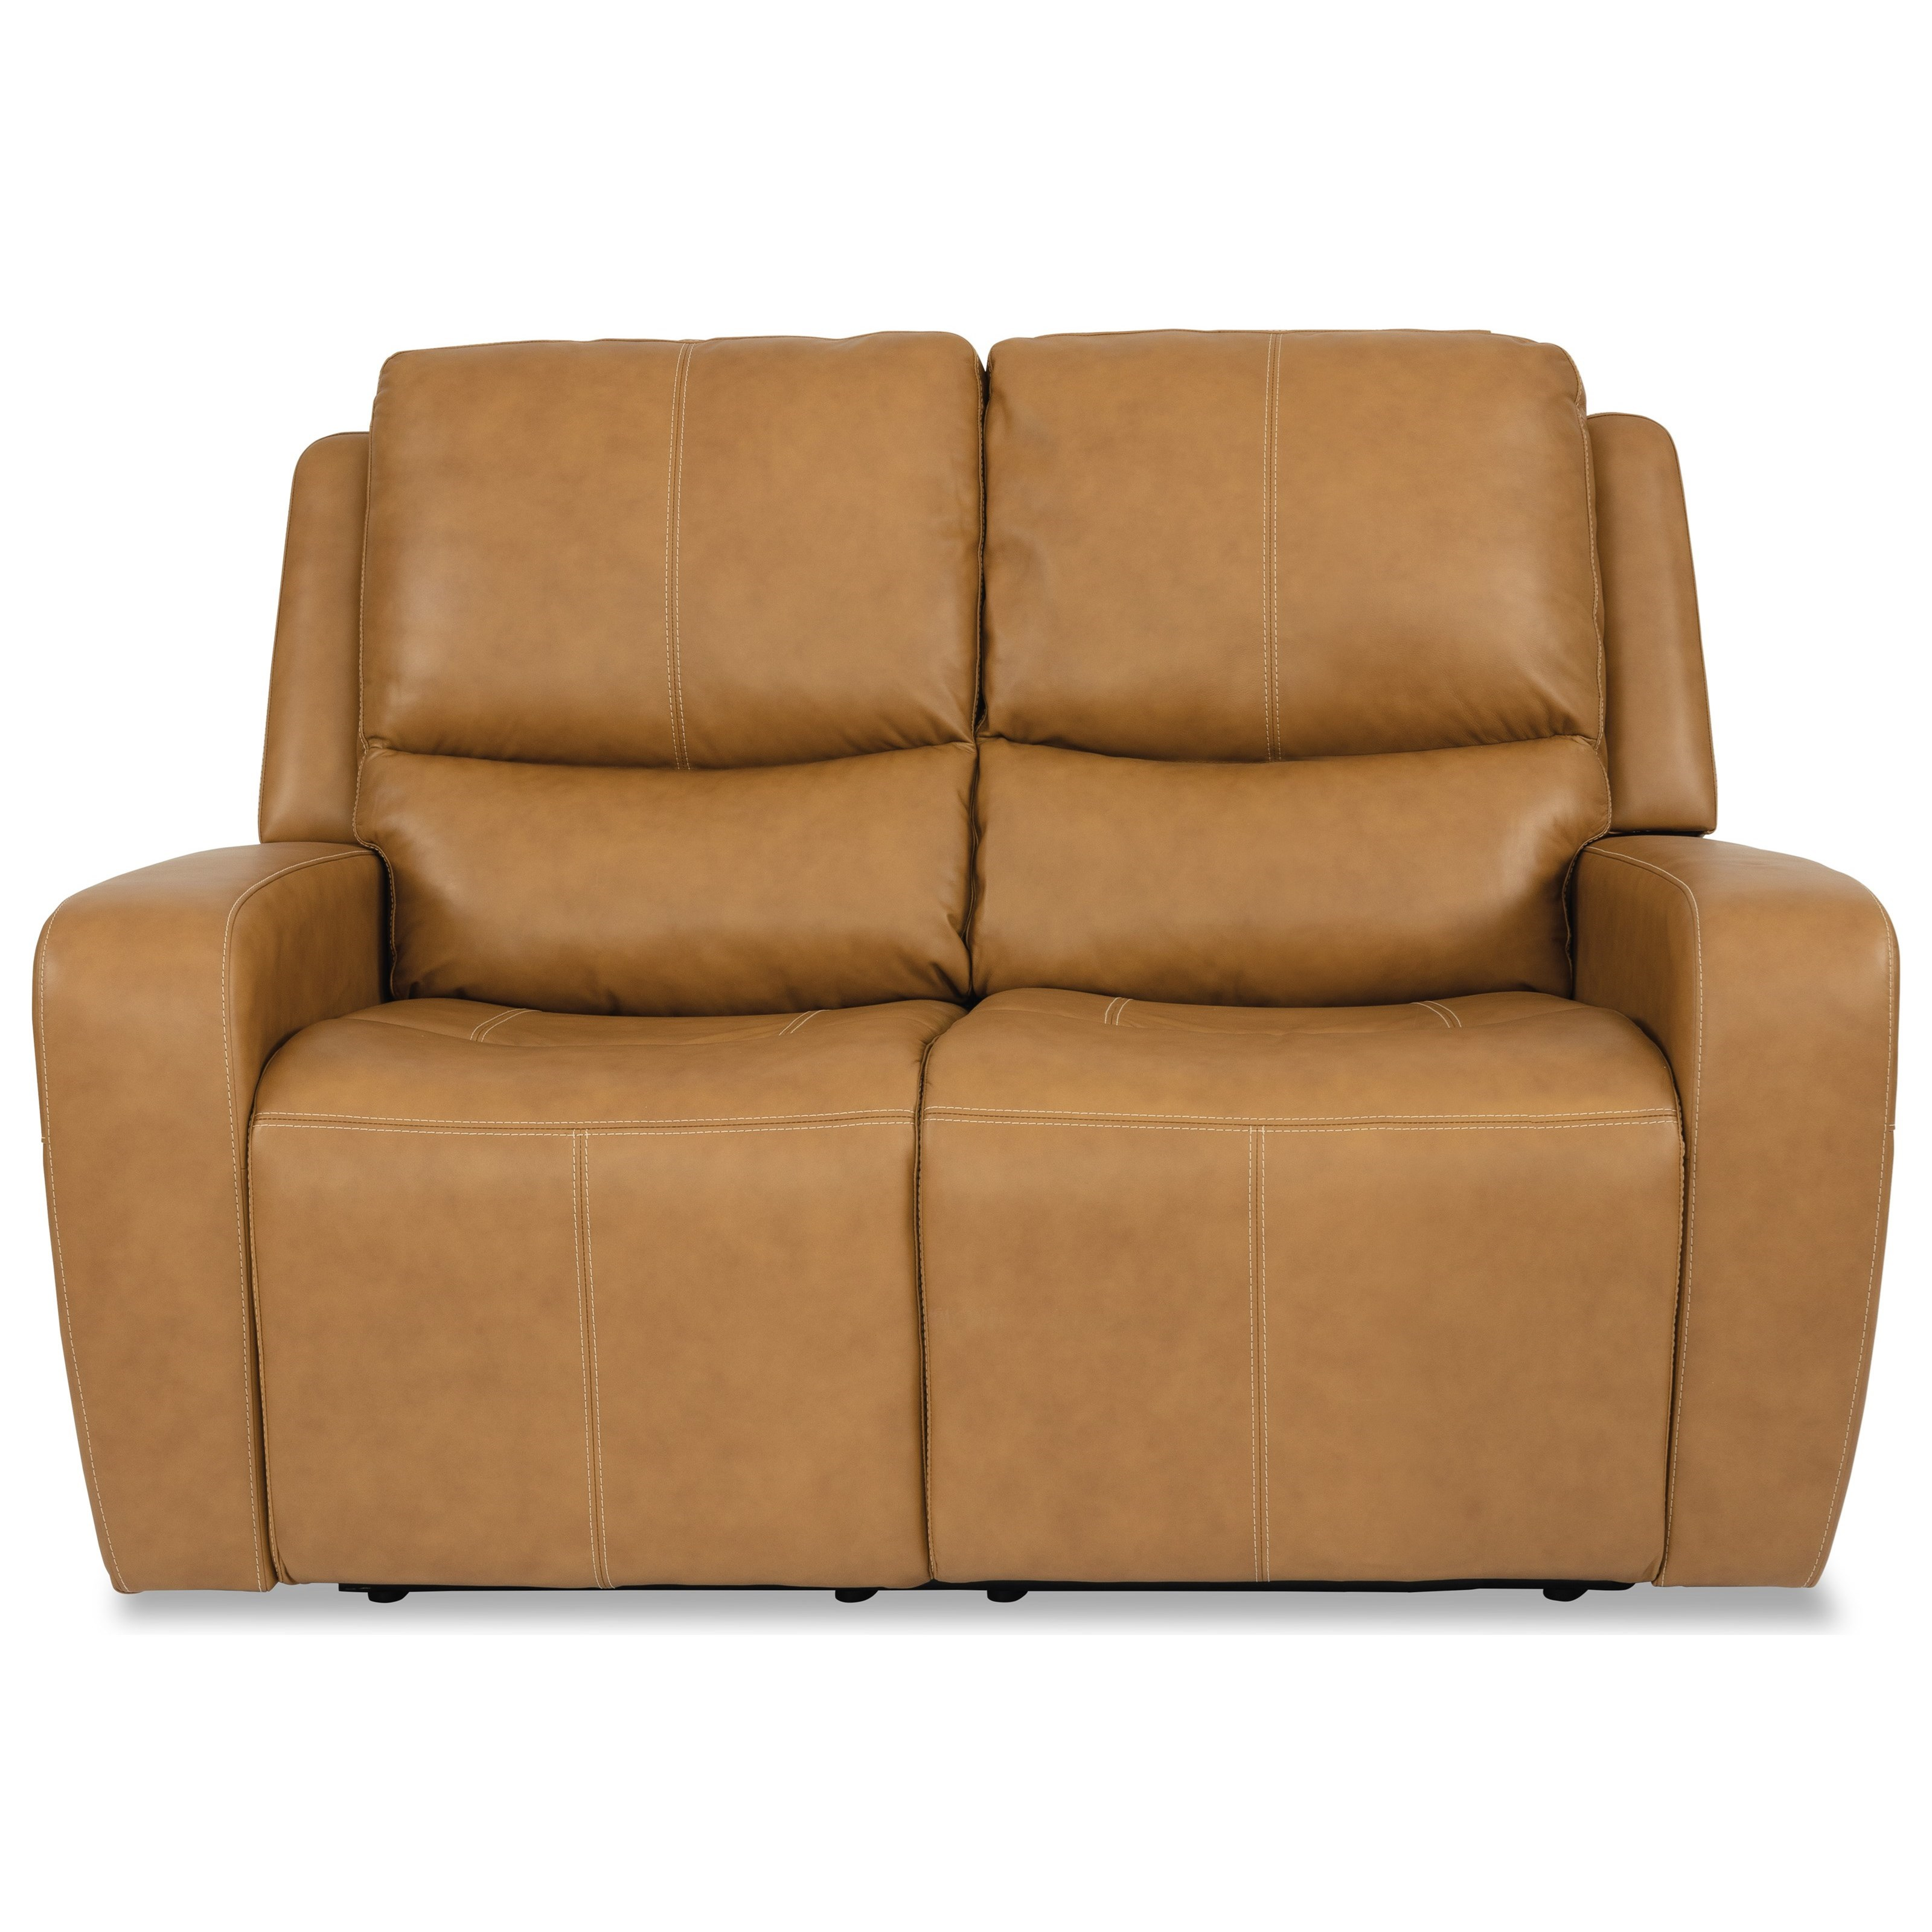 Latitudes - Aiden Power Reclining Loveseat by Flexsteel at Home Collections Furniture